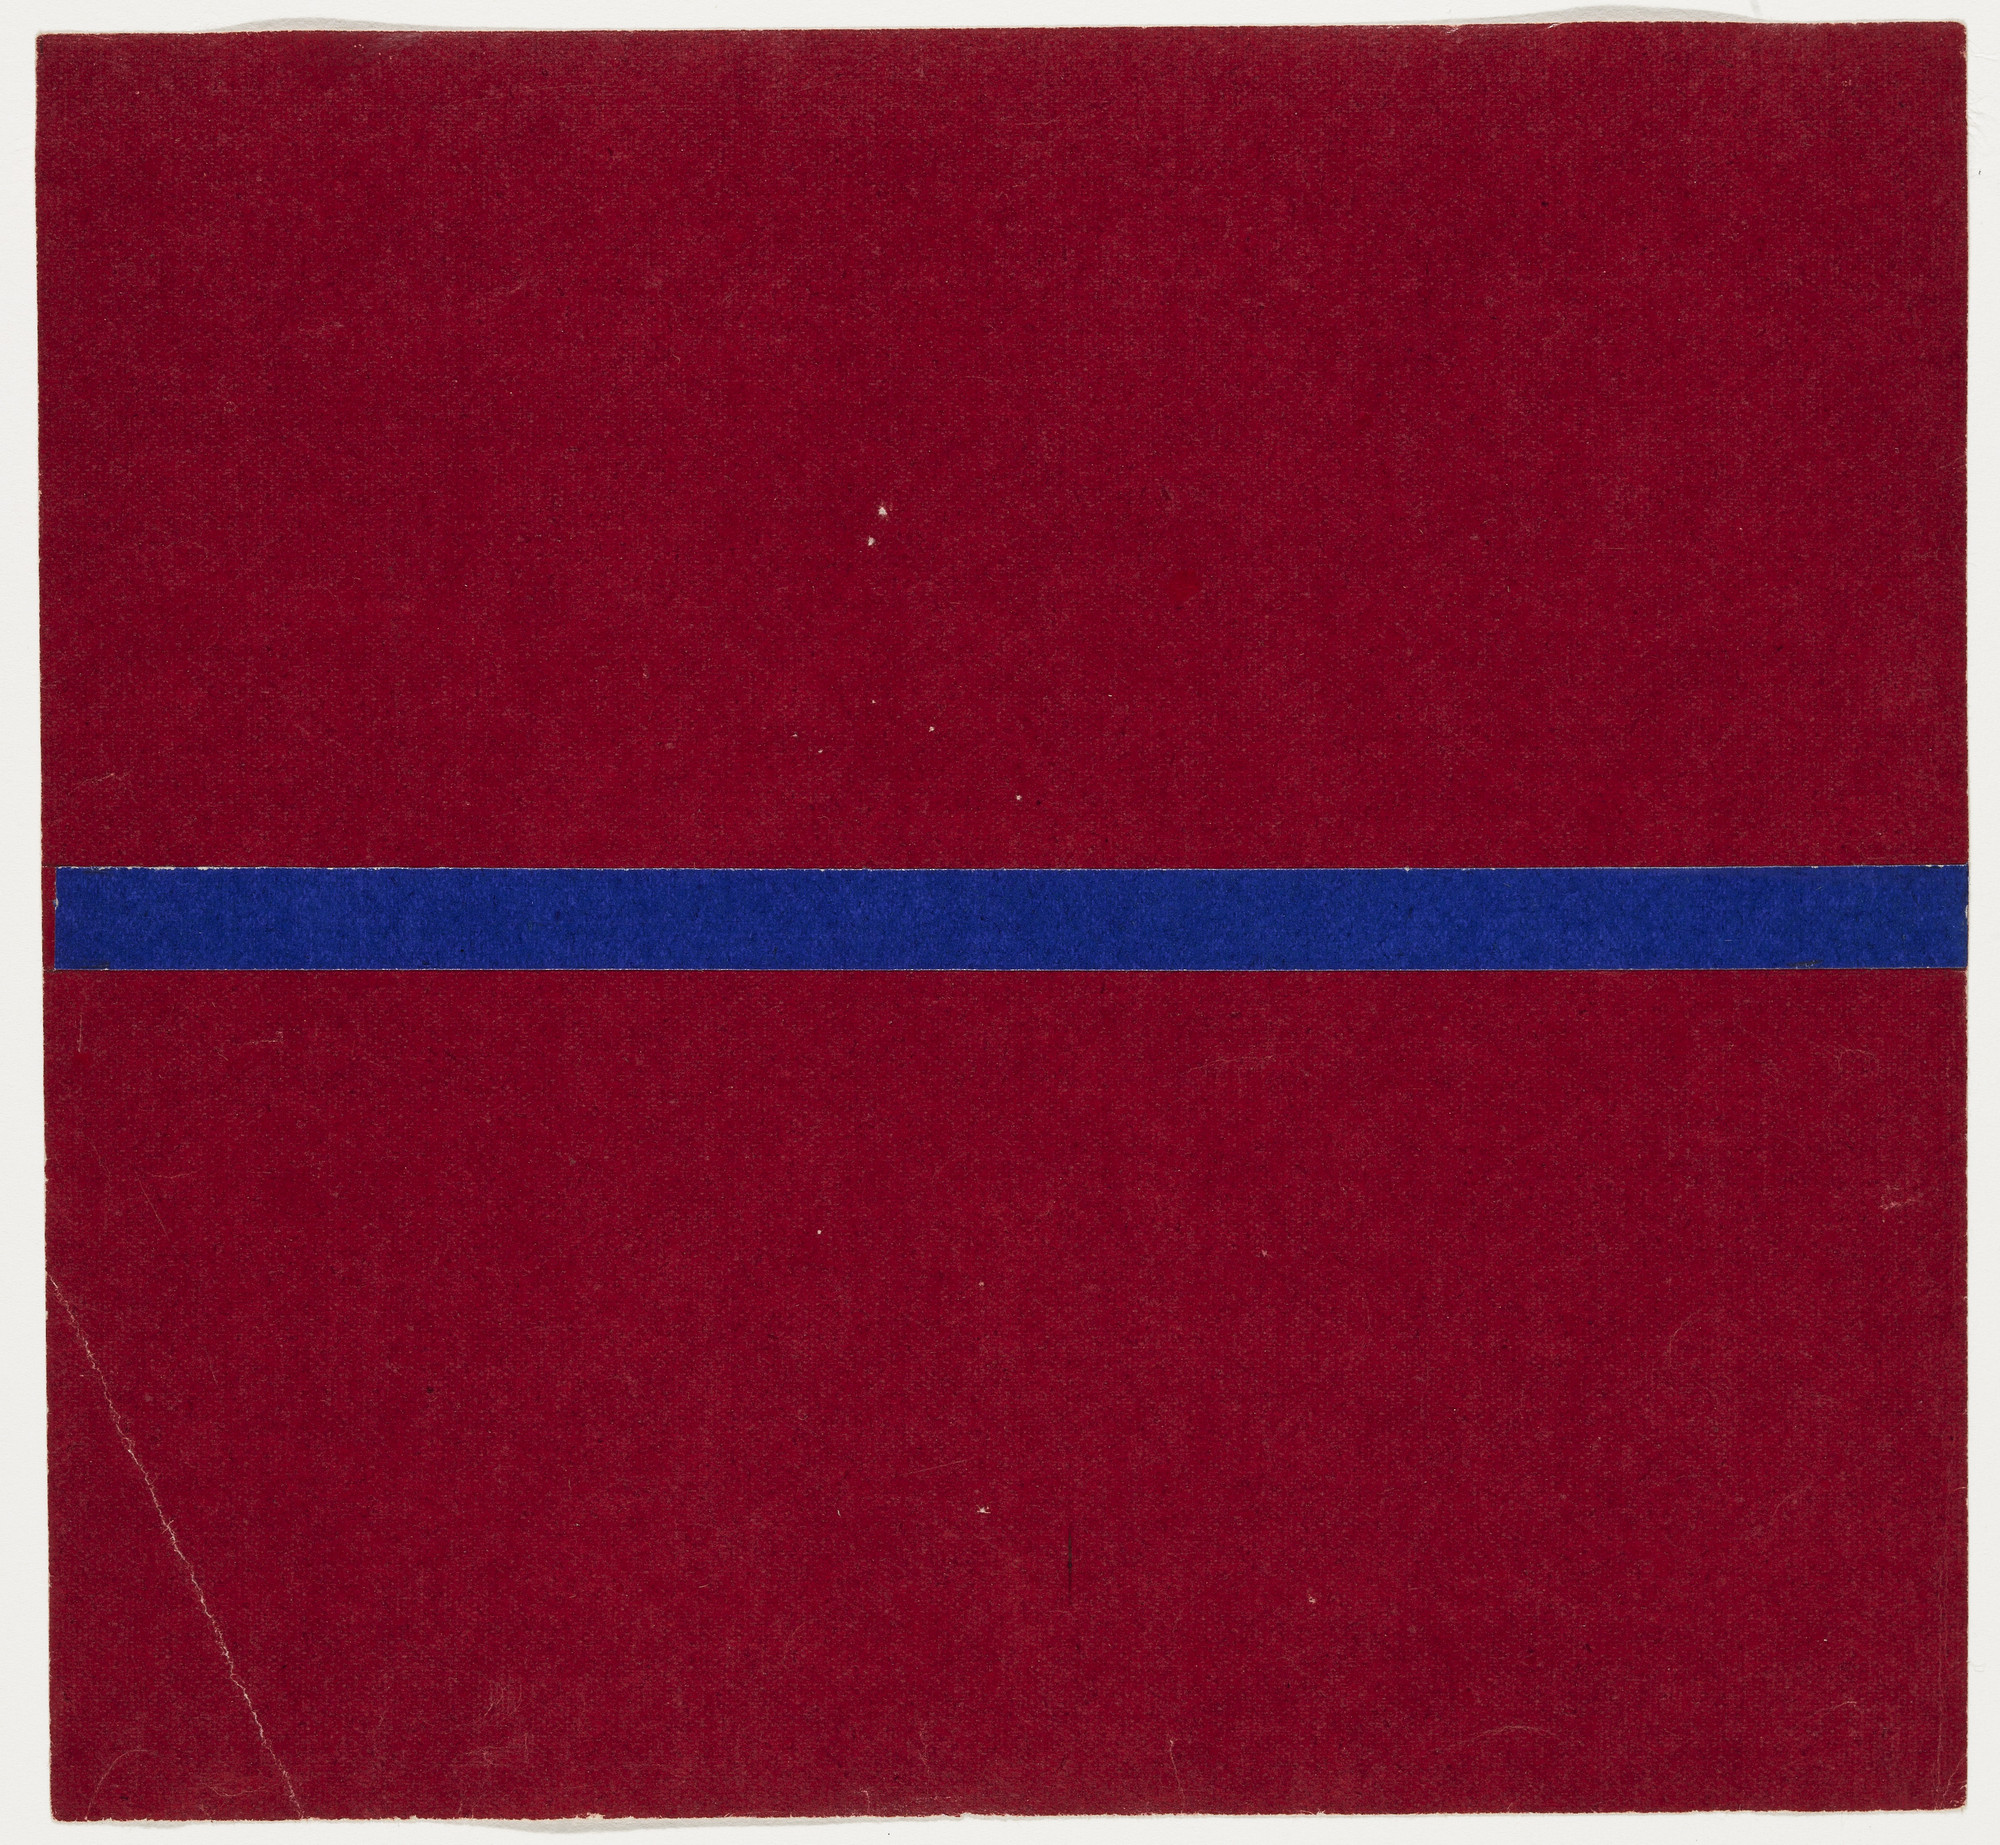 Ellsworth Kelly. Blue and Red from the series Line Form Color. 1951